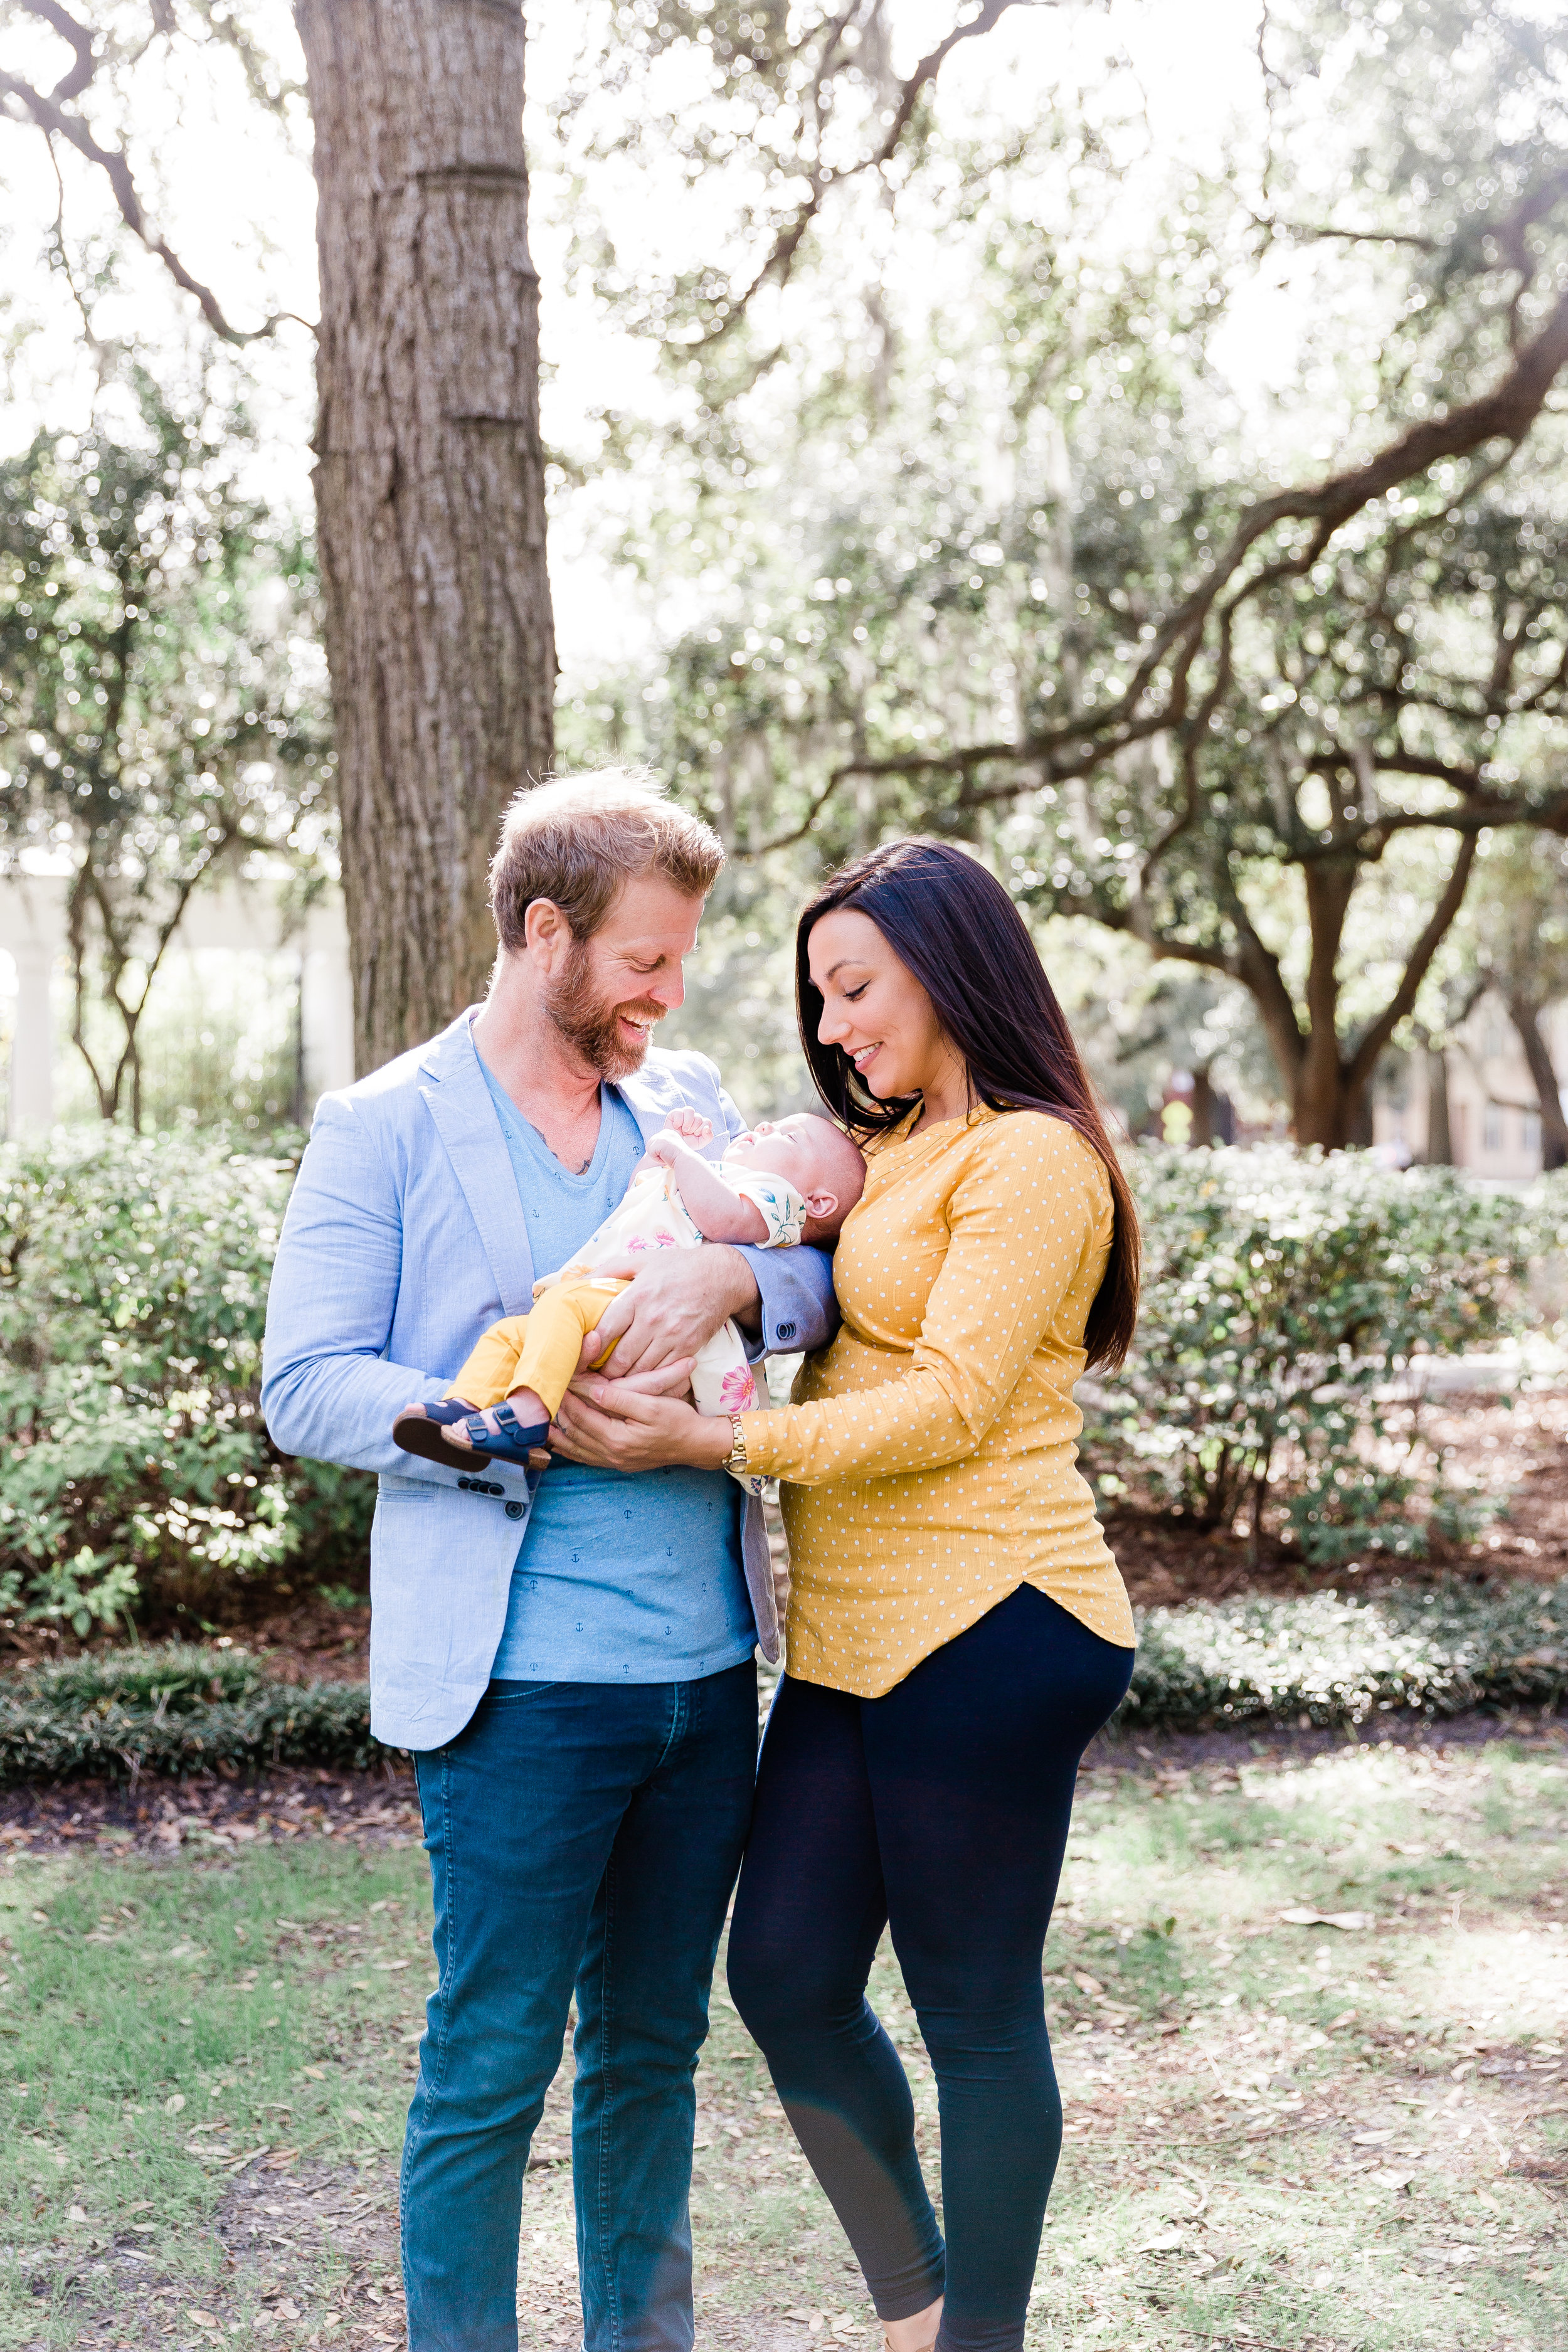 Valentines_mini_sessions_Savannah_Georgia_Photographer_Southern_Lens_Photography_Breigh_Ard_13.jpg